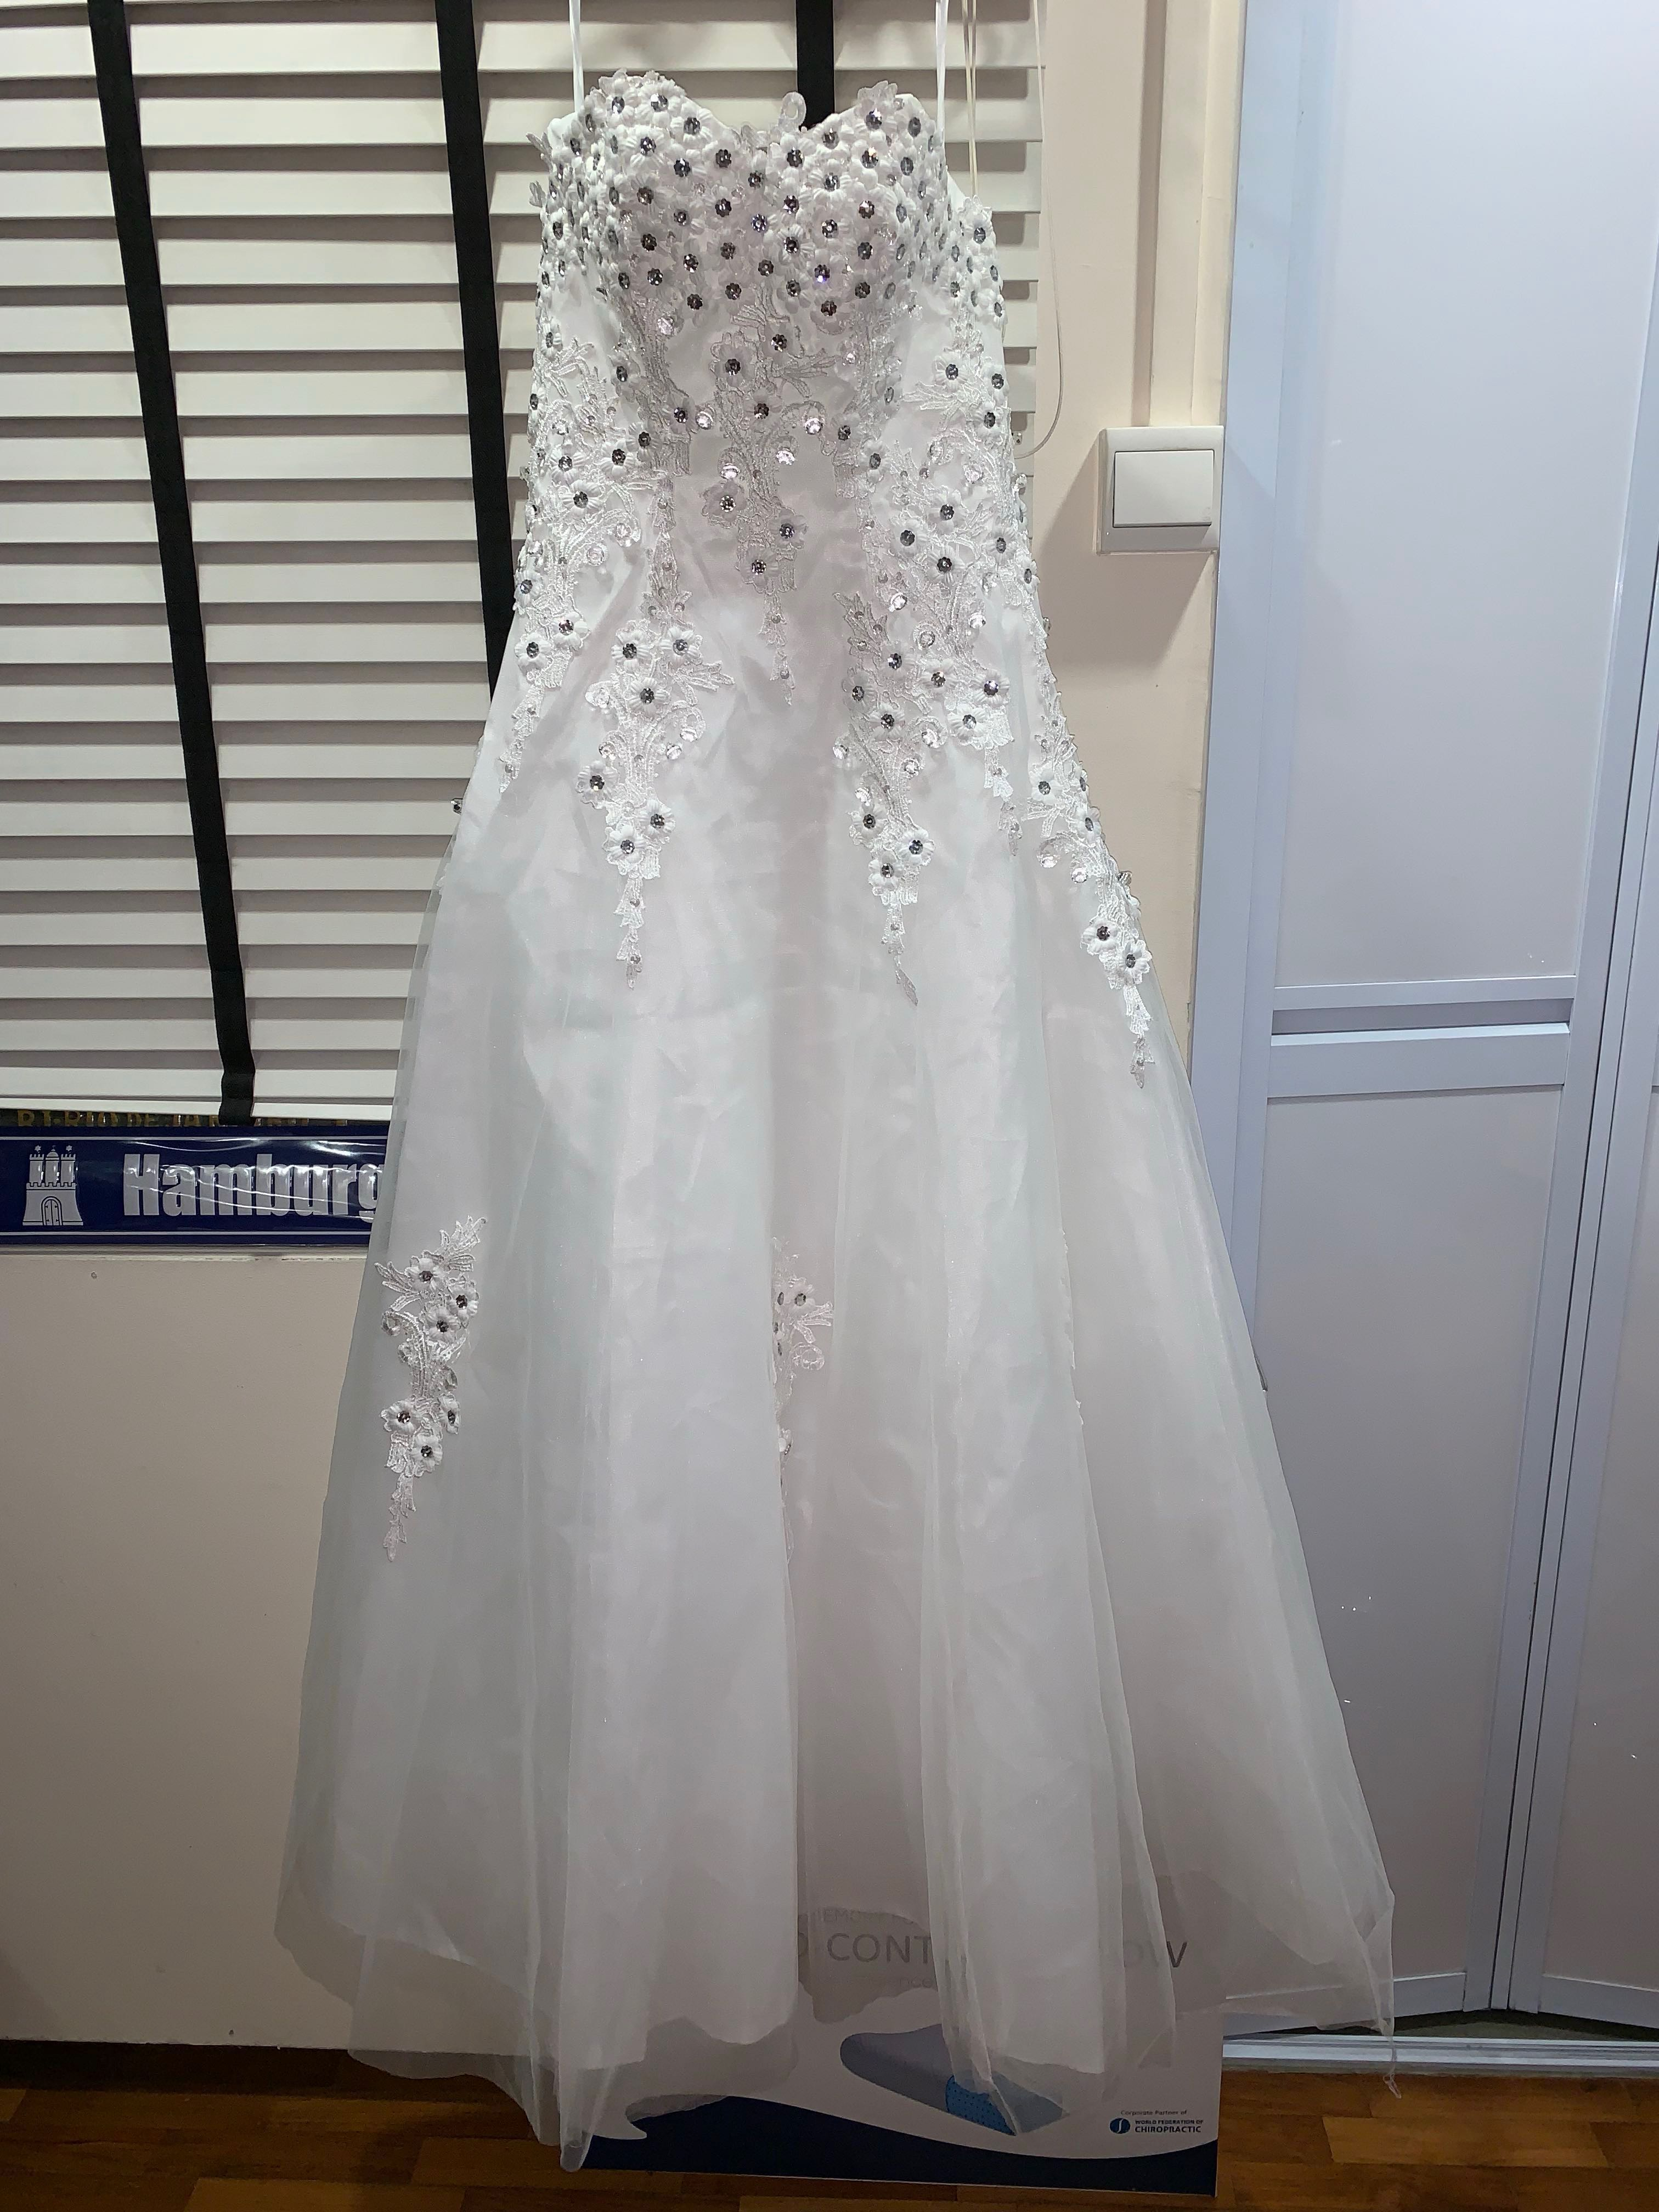 wedding gown (white gown)